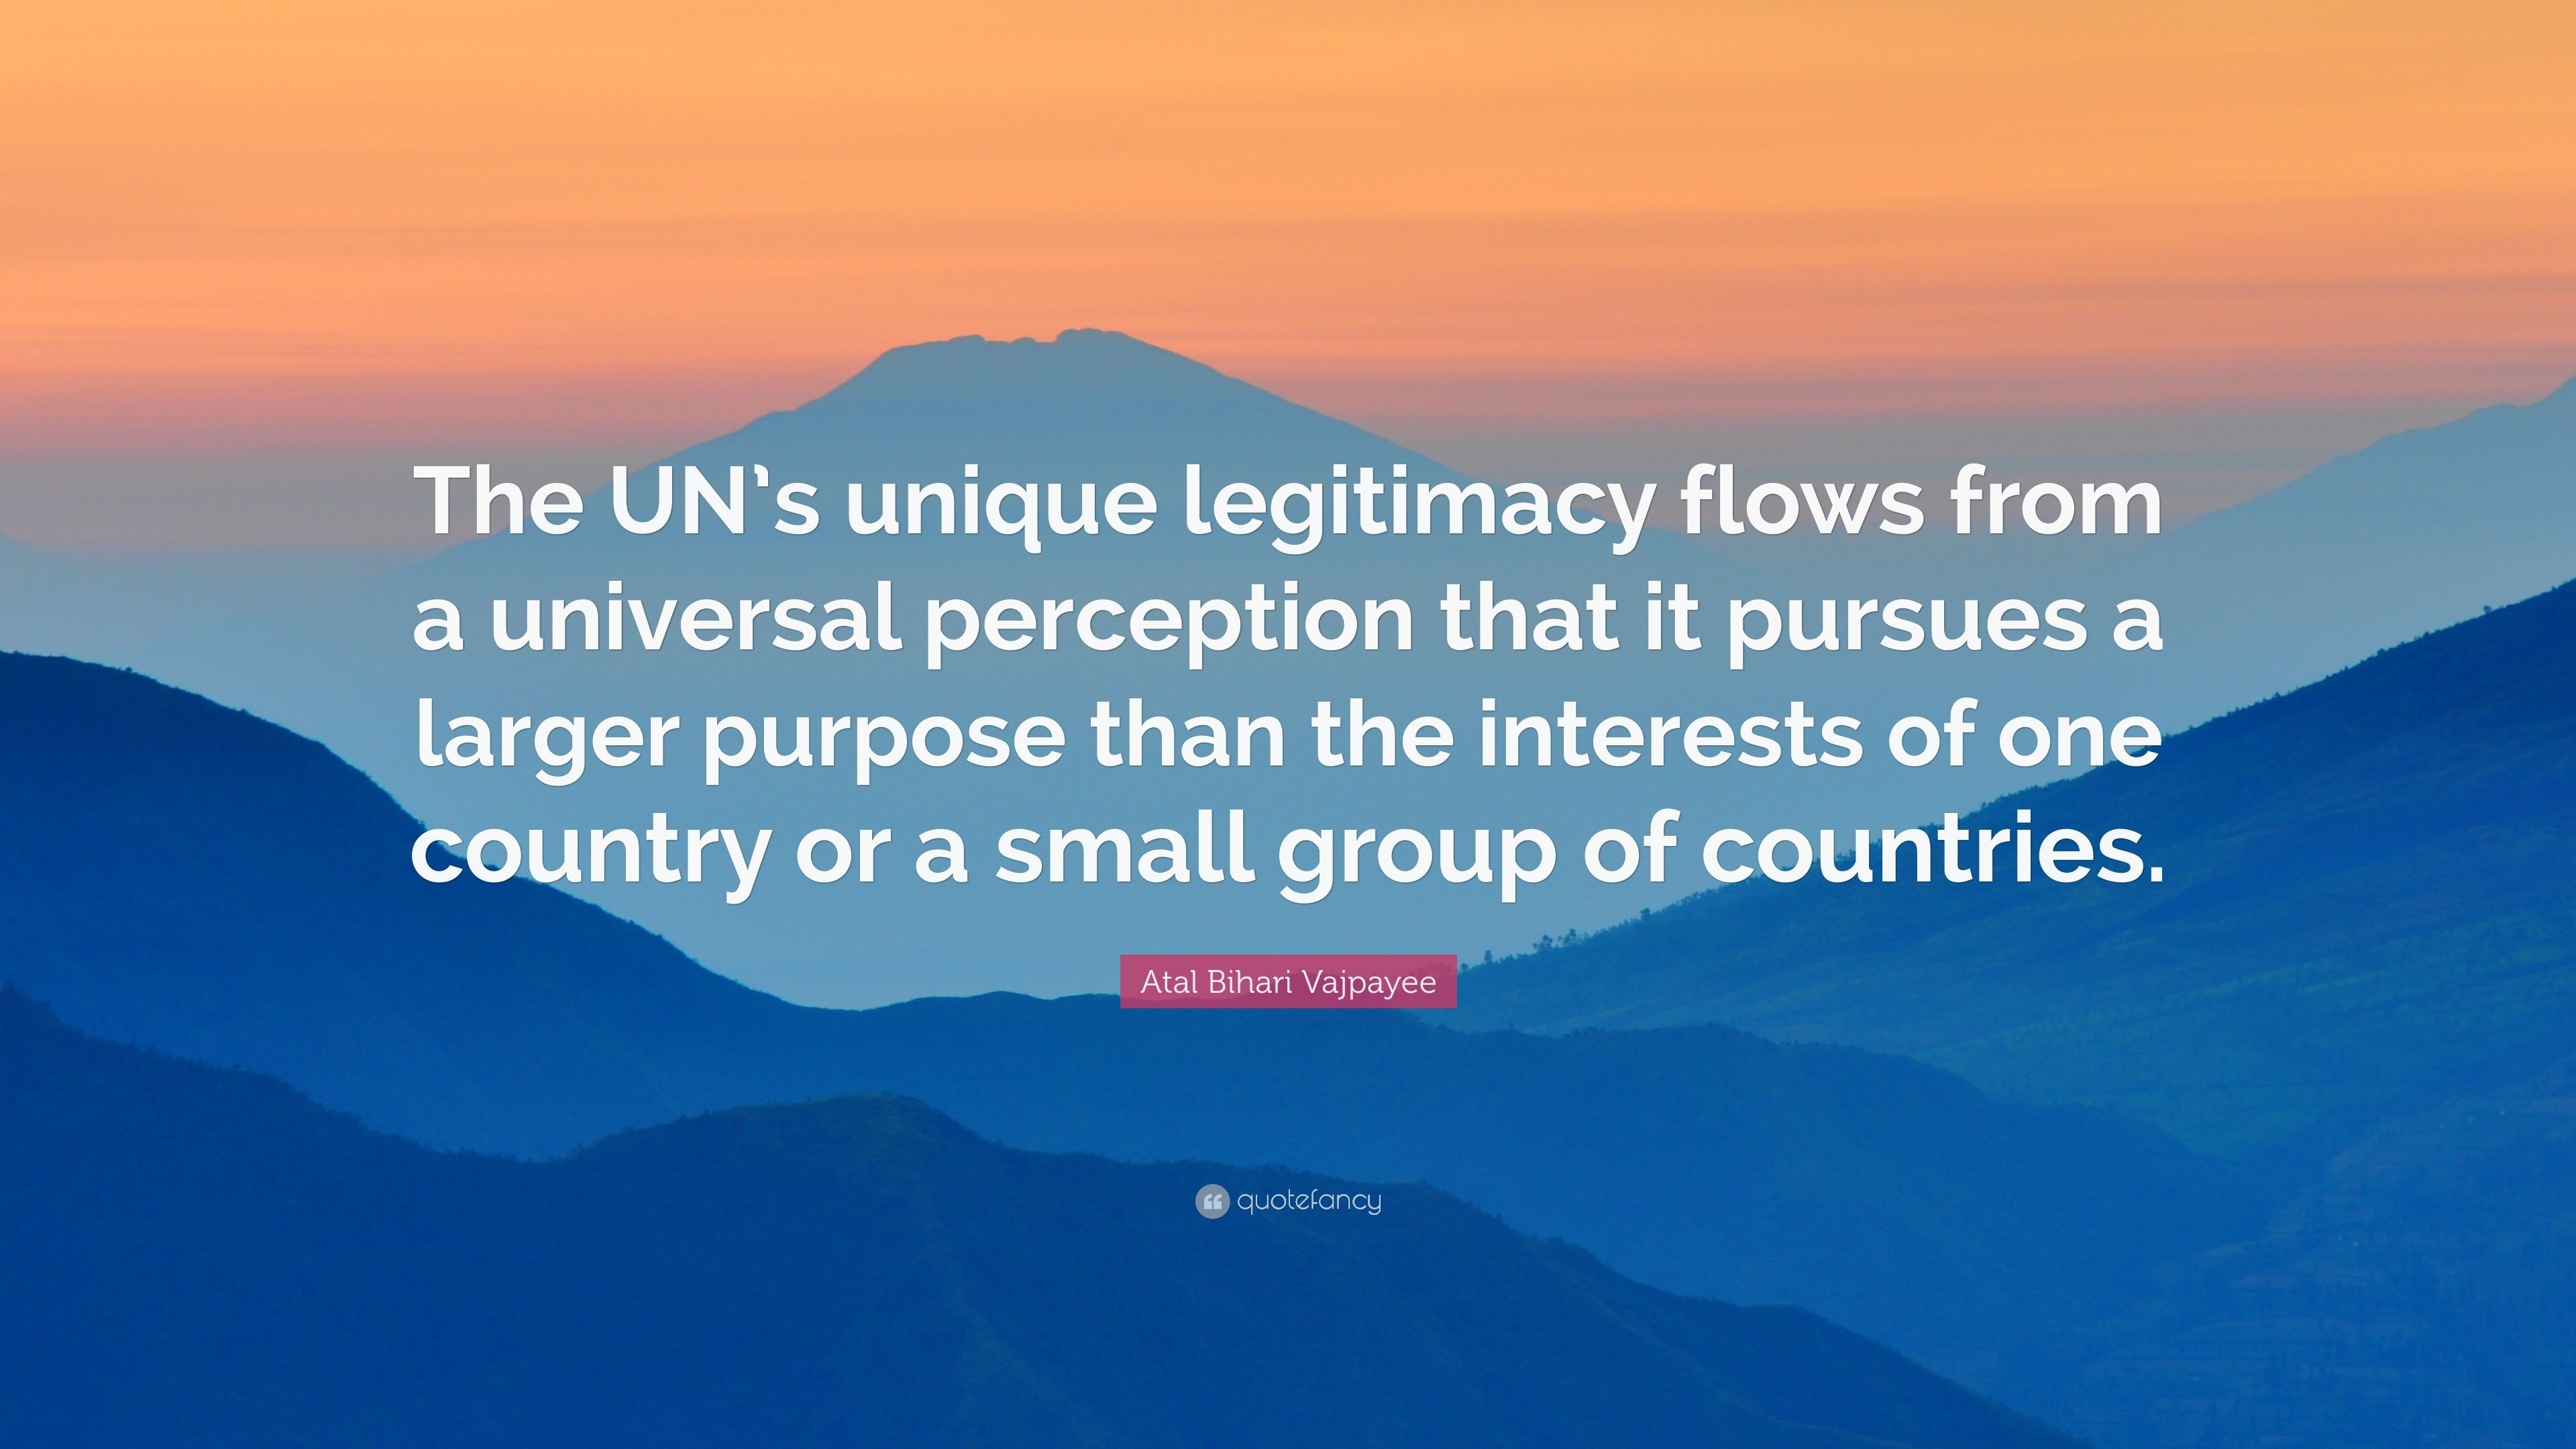 Image result for The UNs purpose images